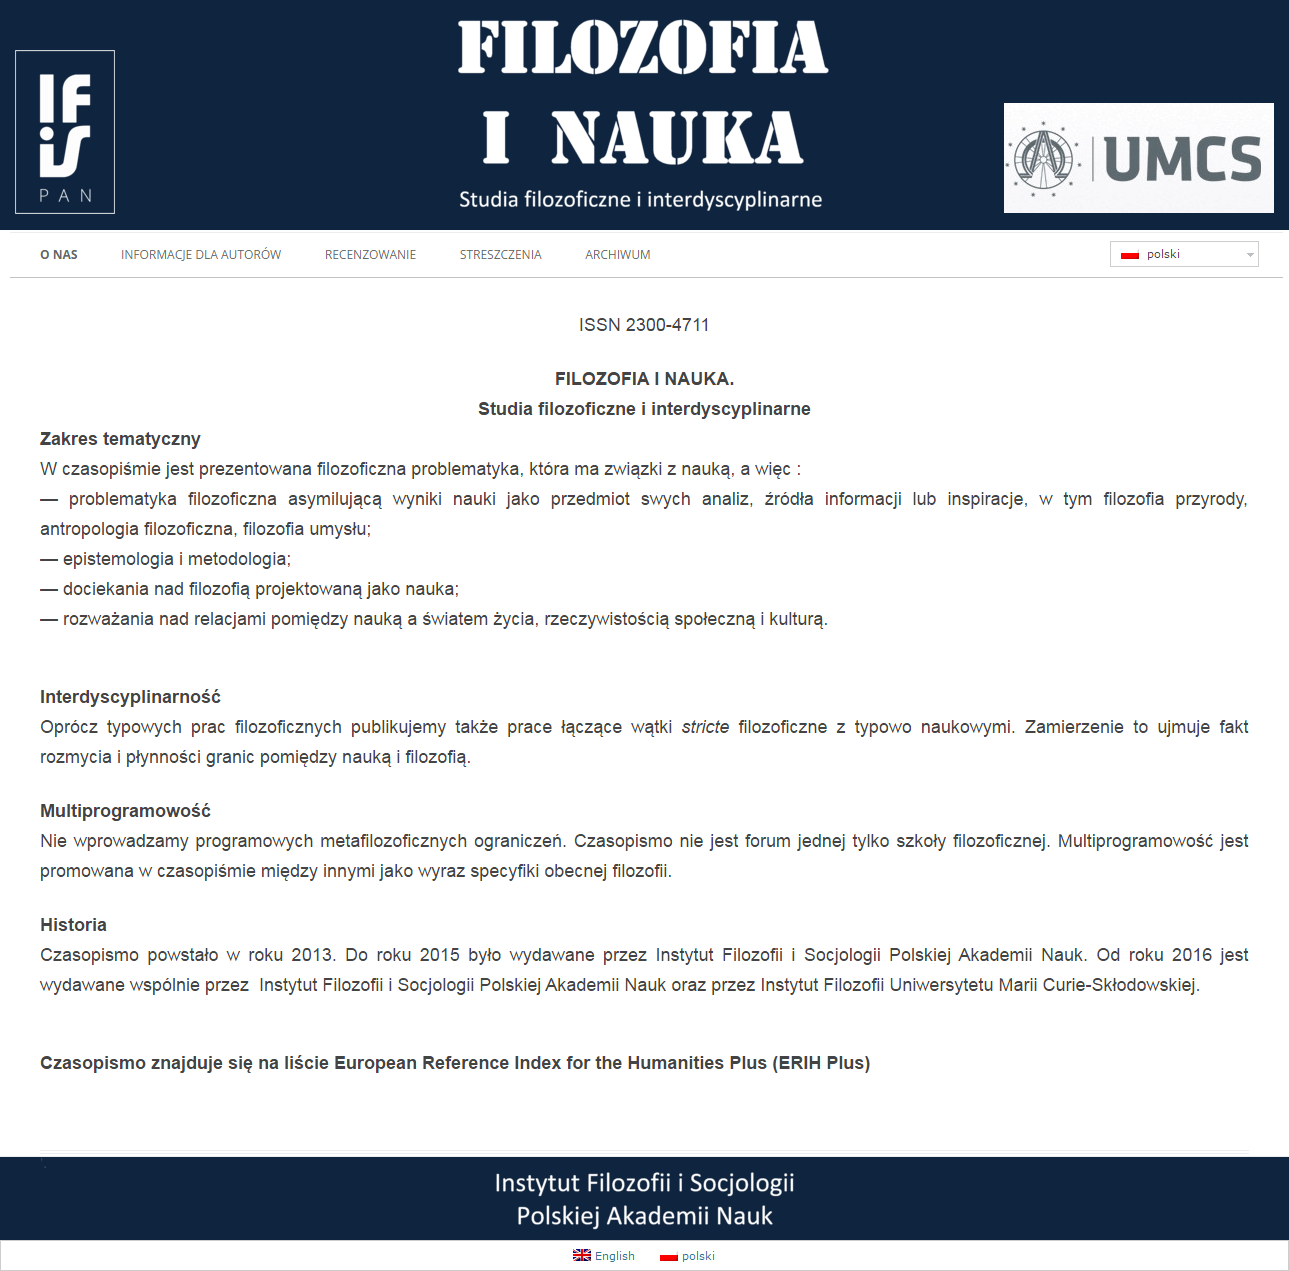 2013-04 Homepage for Institute of Philosophy and Sociology of the Polish Academy of Sciences Journal – filozofiainauka.ifispan.waw.pl